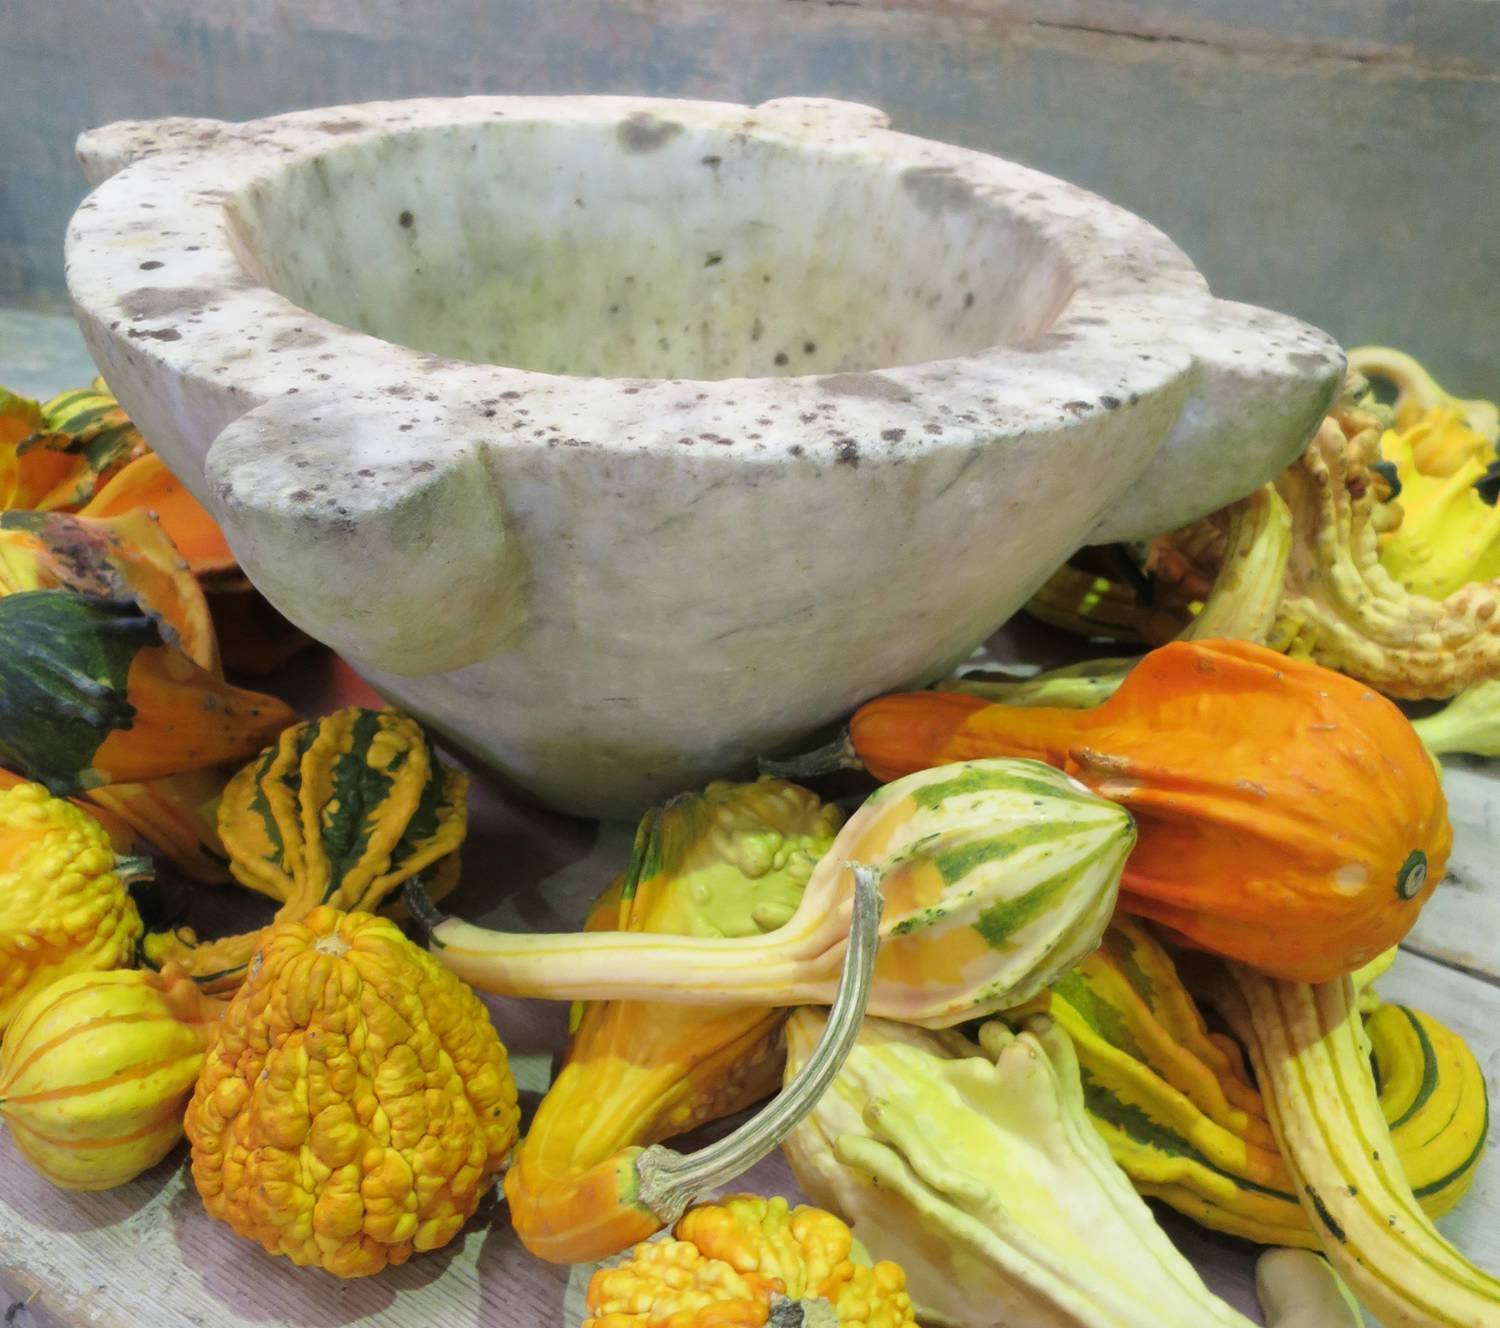 18th century white Marble Mortar & Pestle